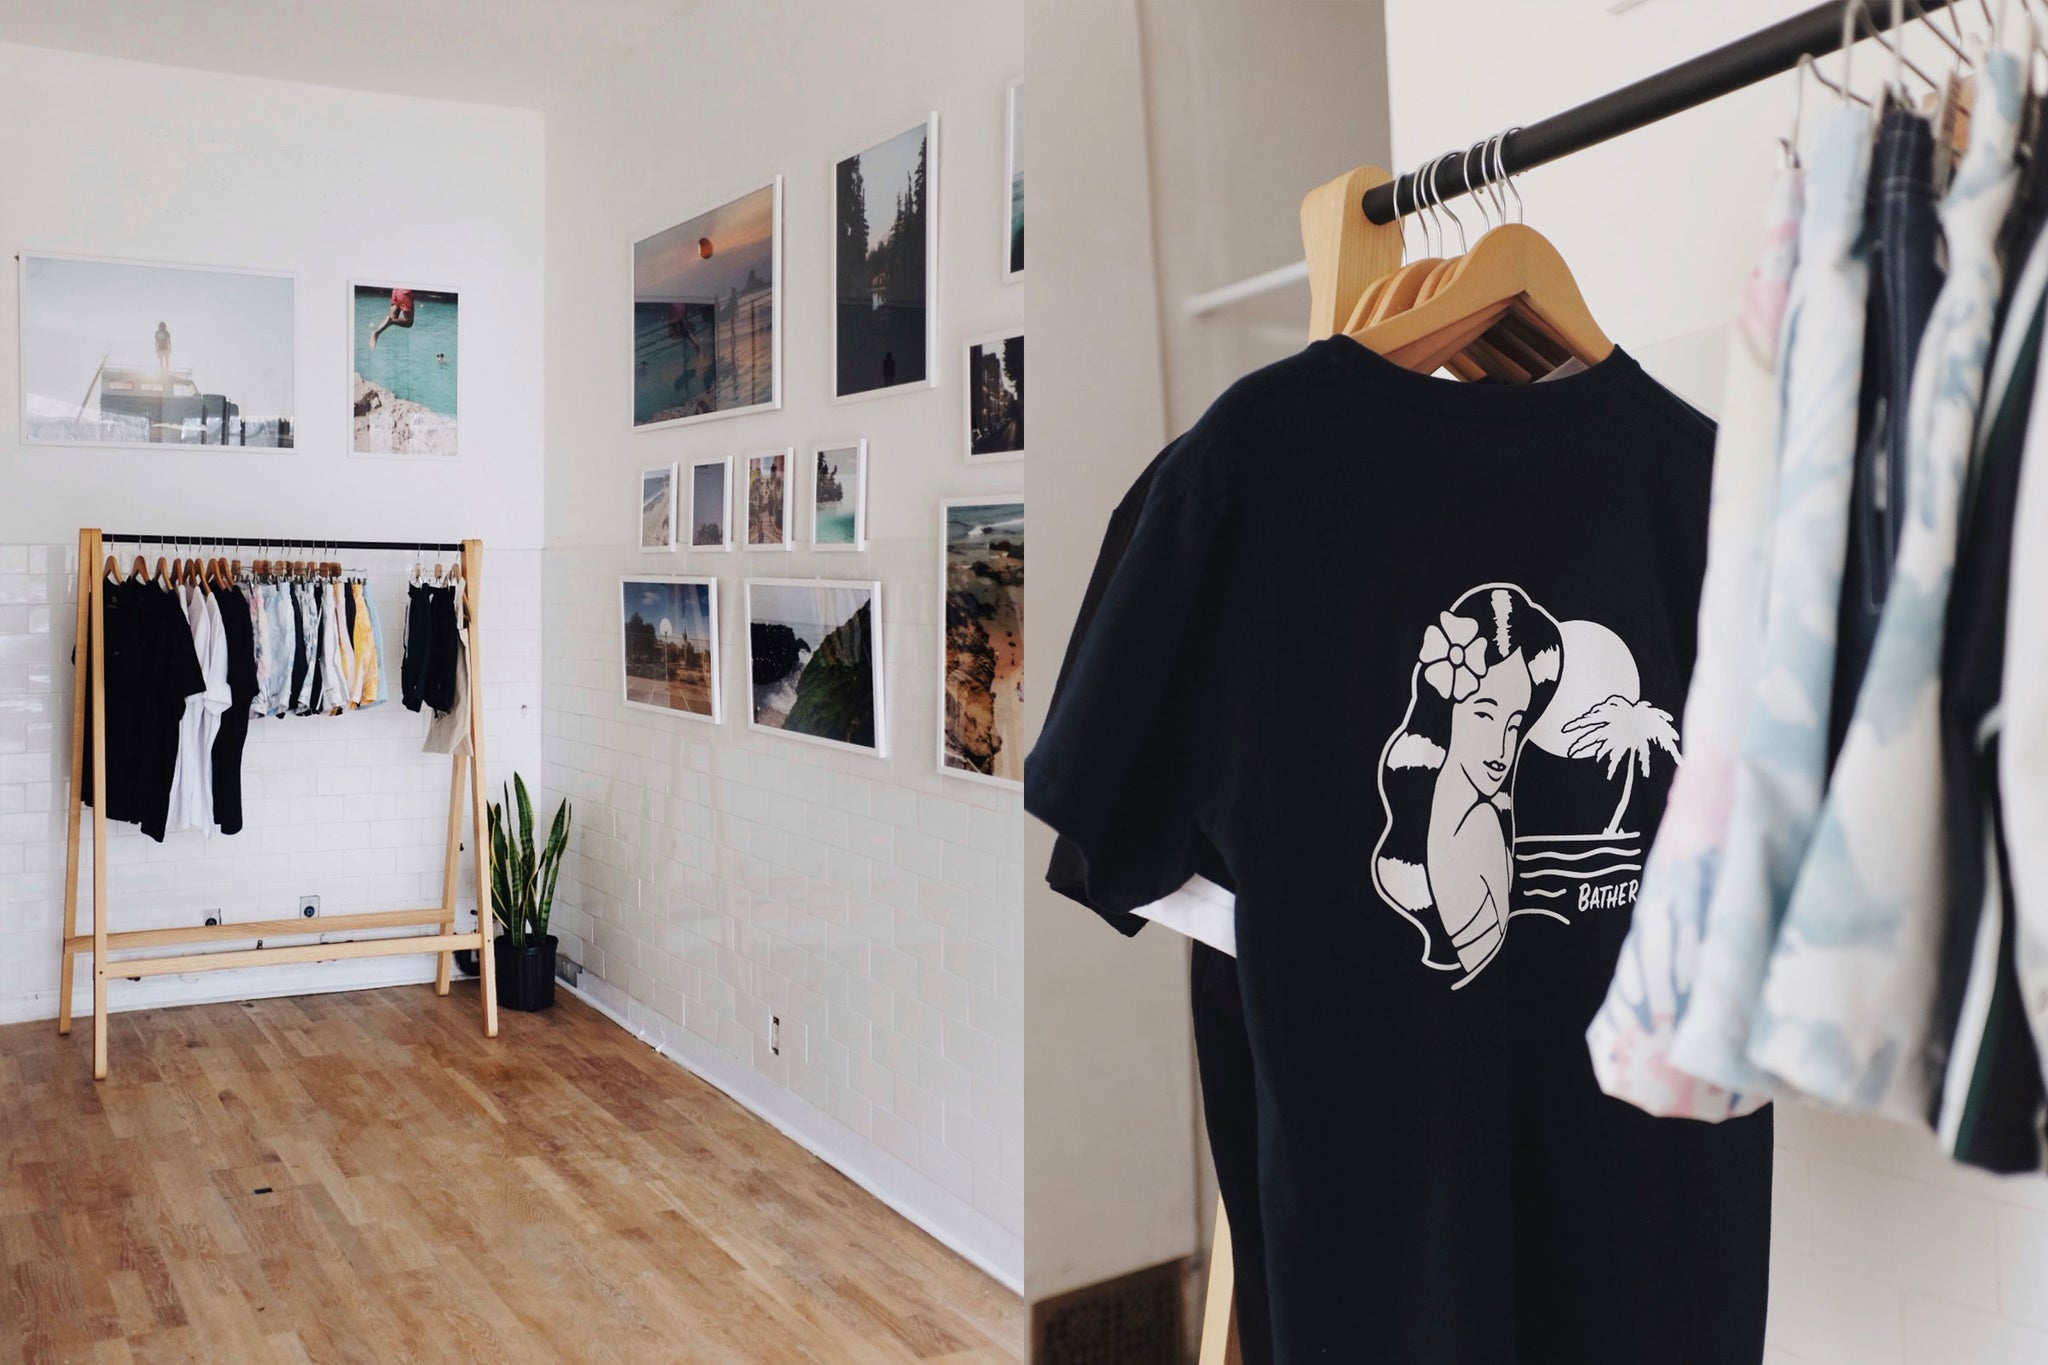 Exclusive merchandise and Resort 2019 at the Wish You Were Here gallery by Bather